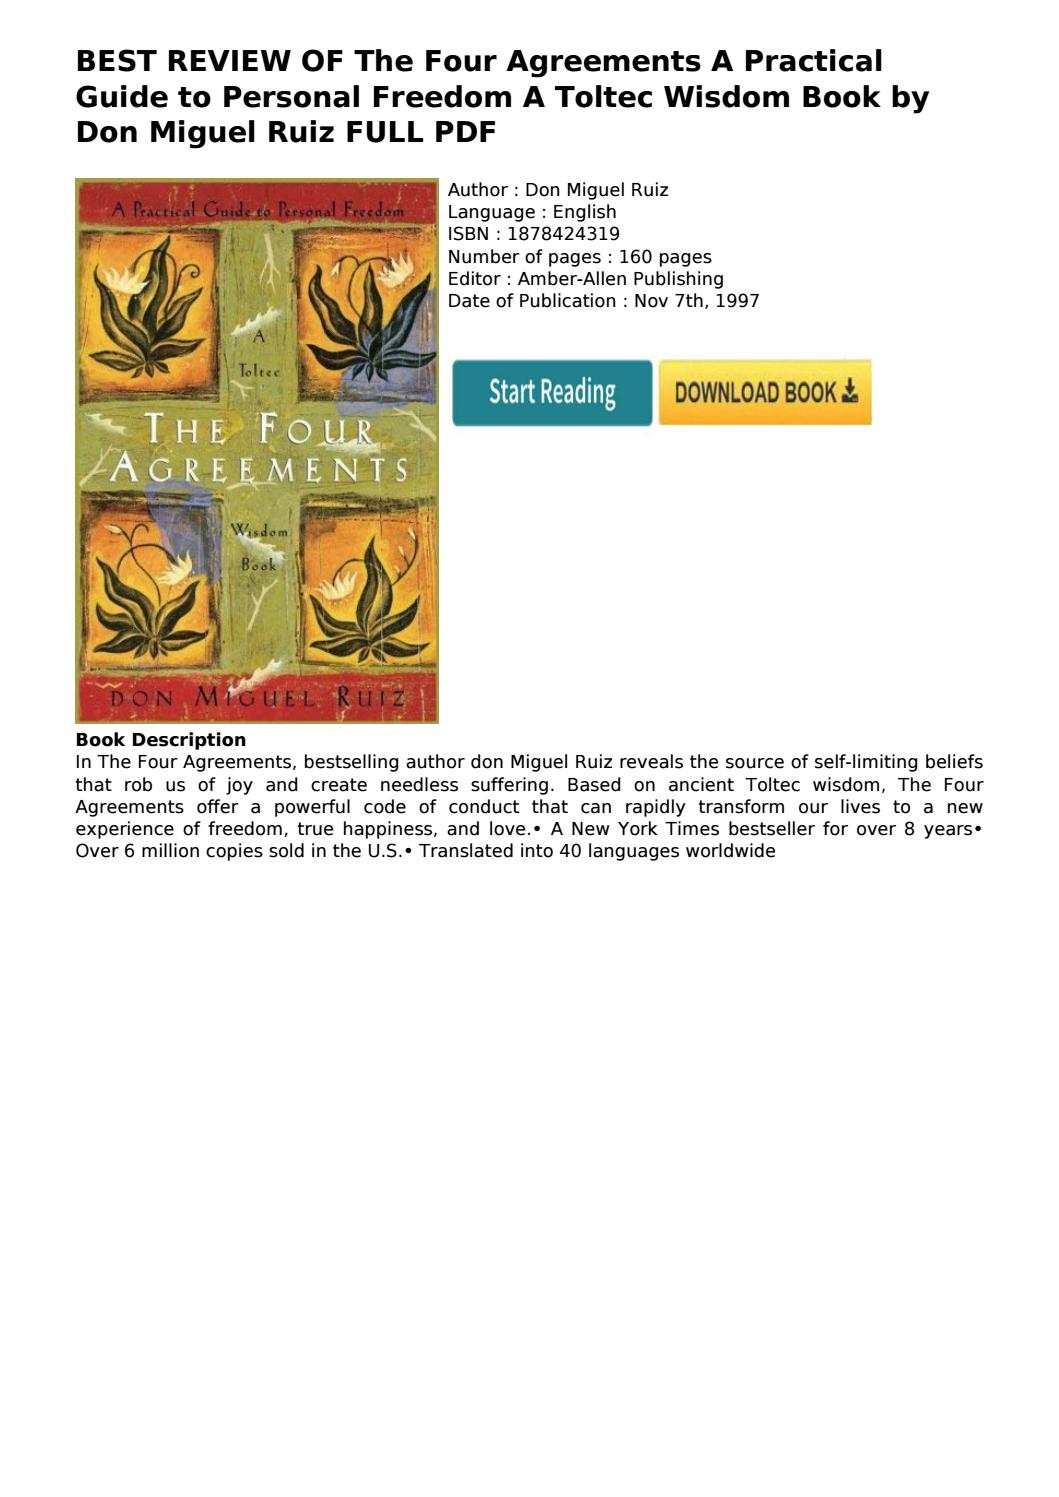 Four Agreements Book Free Download Best Review Of The Four Agreements A Practical Guide To Personal